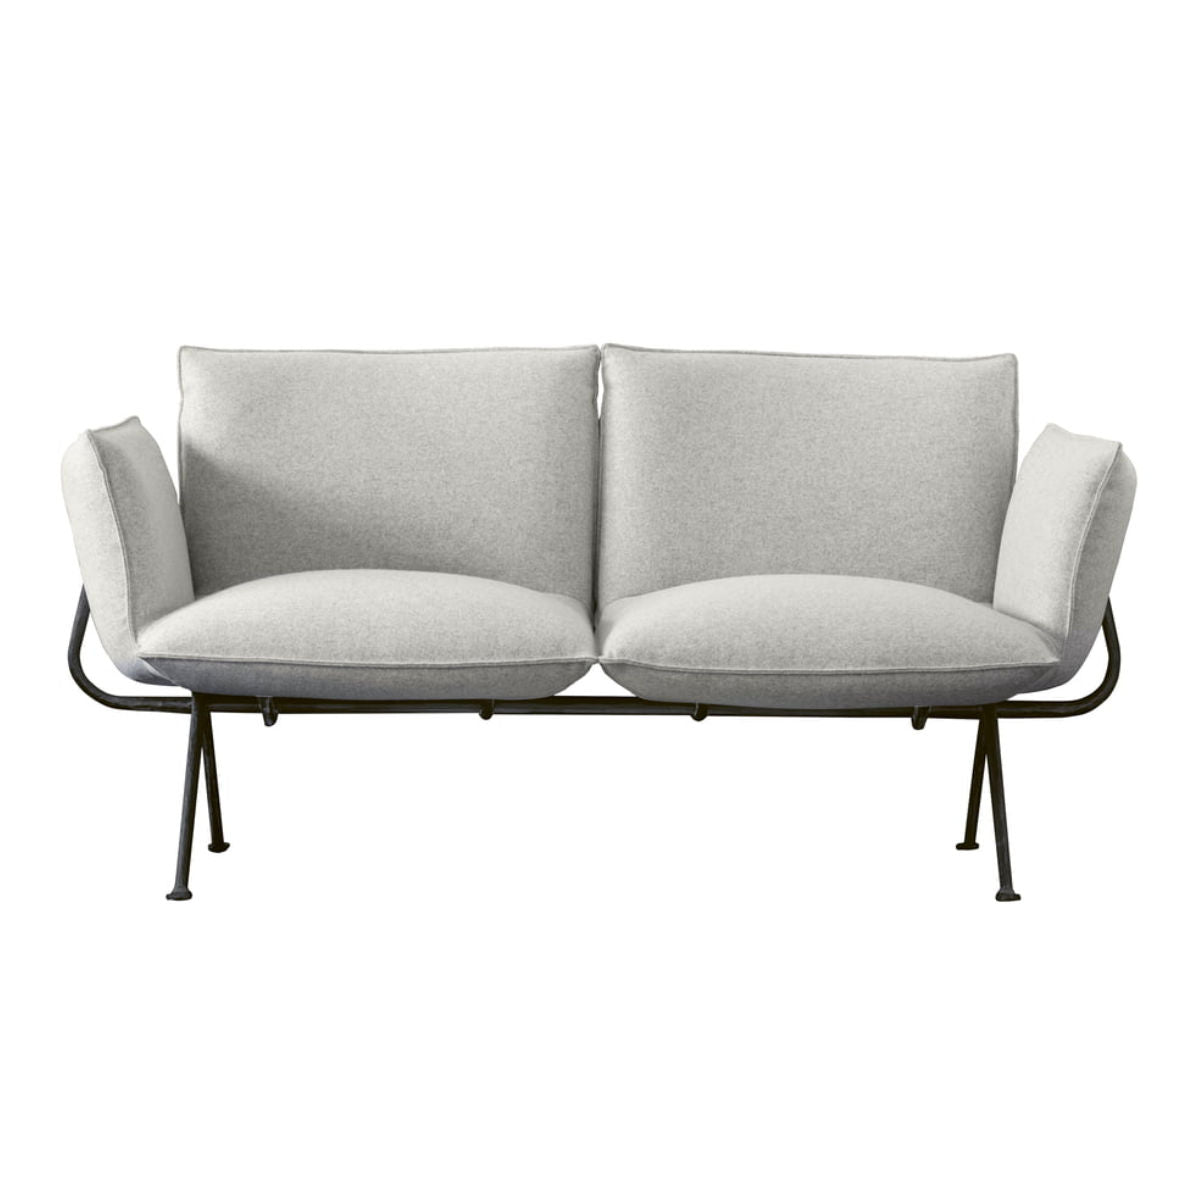 Magis Officina 2 seater sofa, divina melange 120, anthracite grey leg